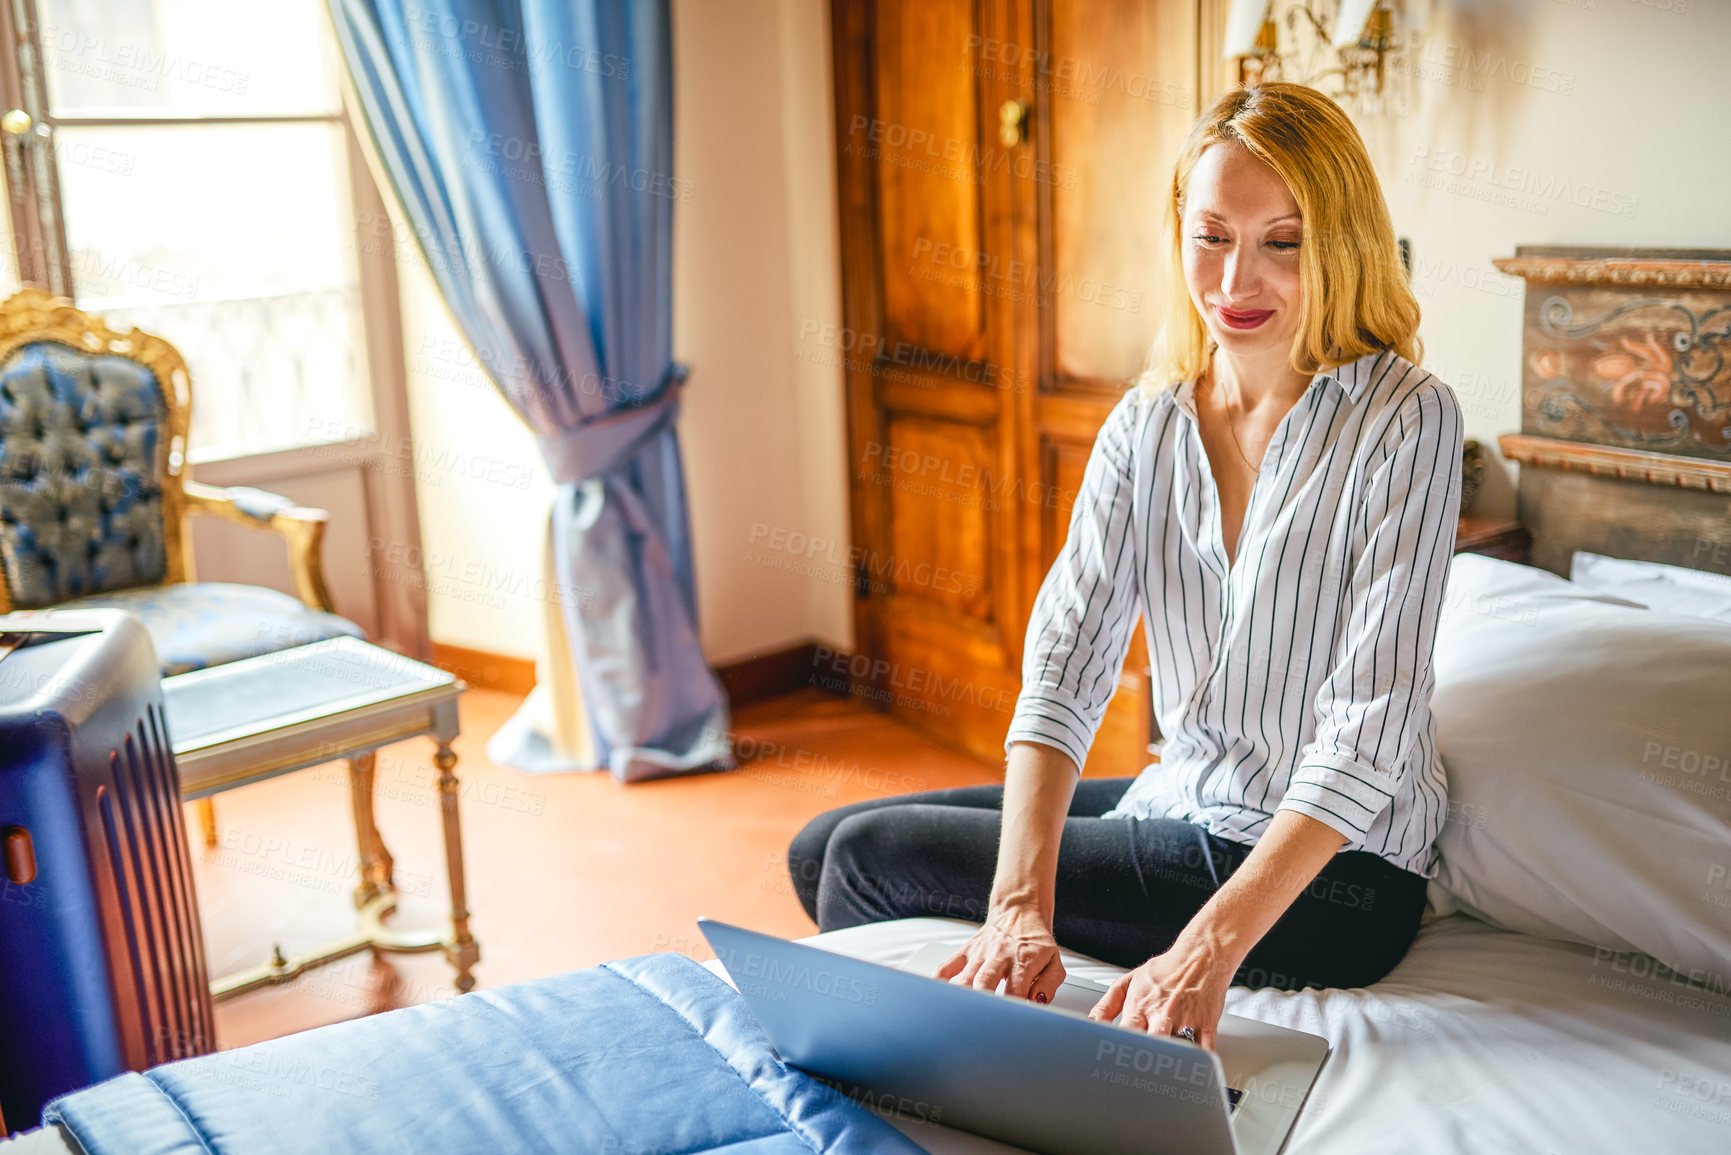 Buy stock photo Shot of an attractive young businesswoman sitting on a bed and using a laptop inside her hotel room